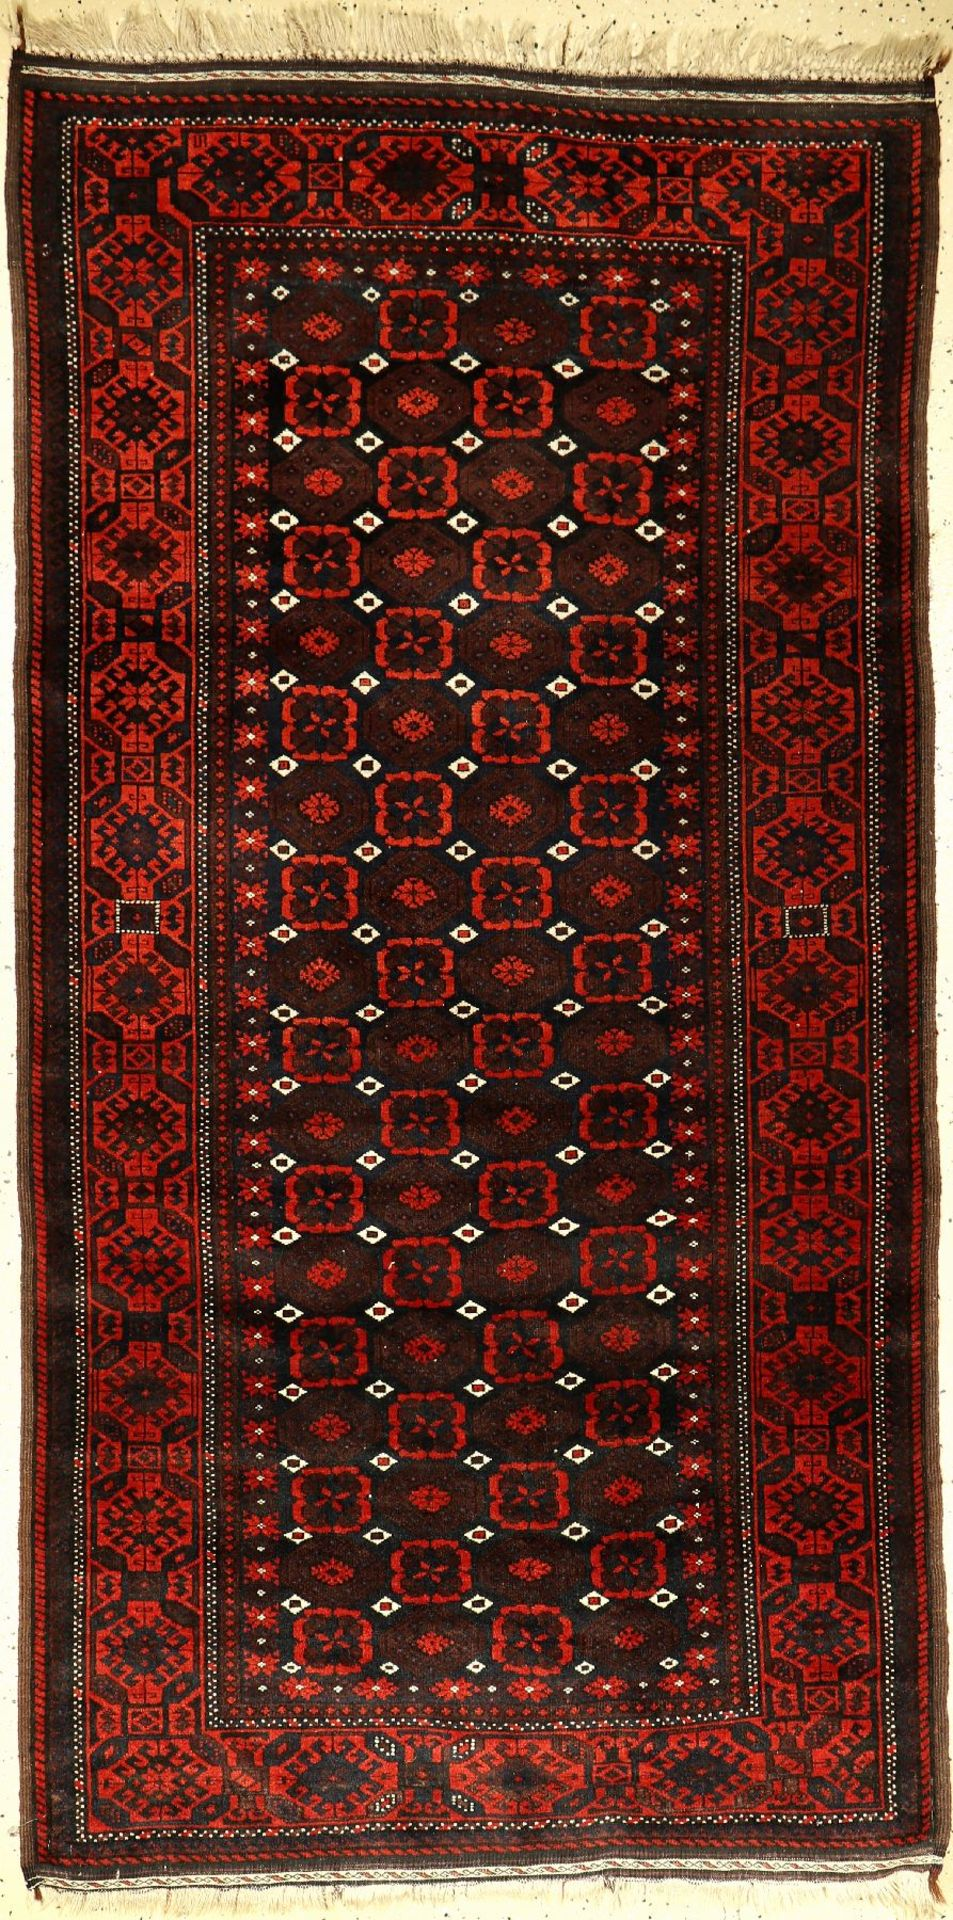 Fine Baluch old, Persia, around 1920, wool on wool, approx. 210 x 107 cm, Mina-Khani, condition: